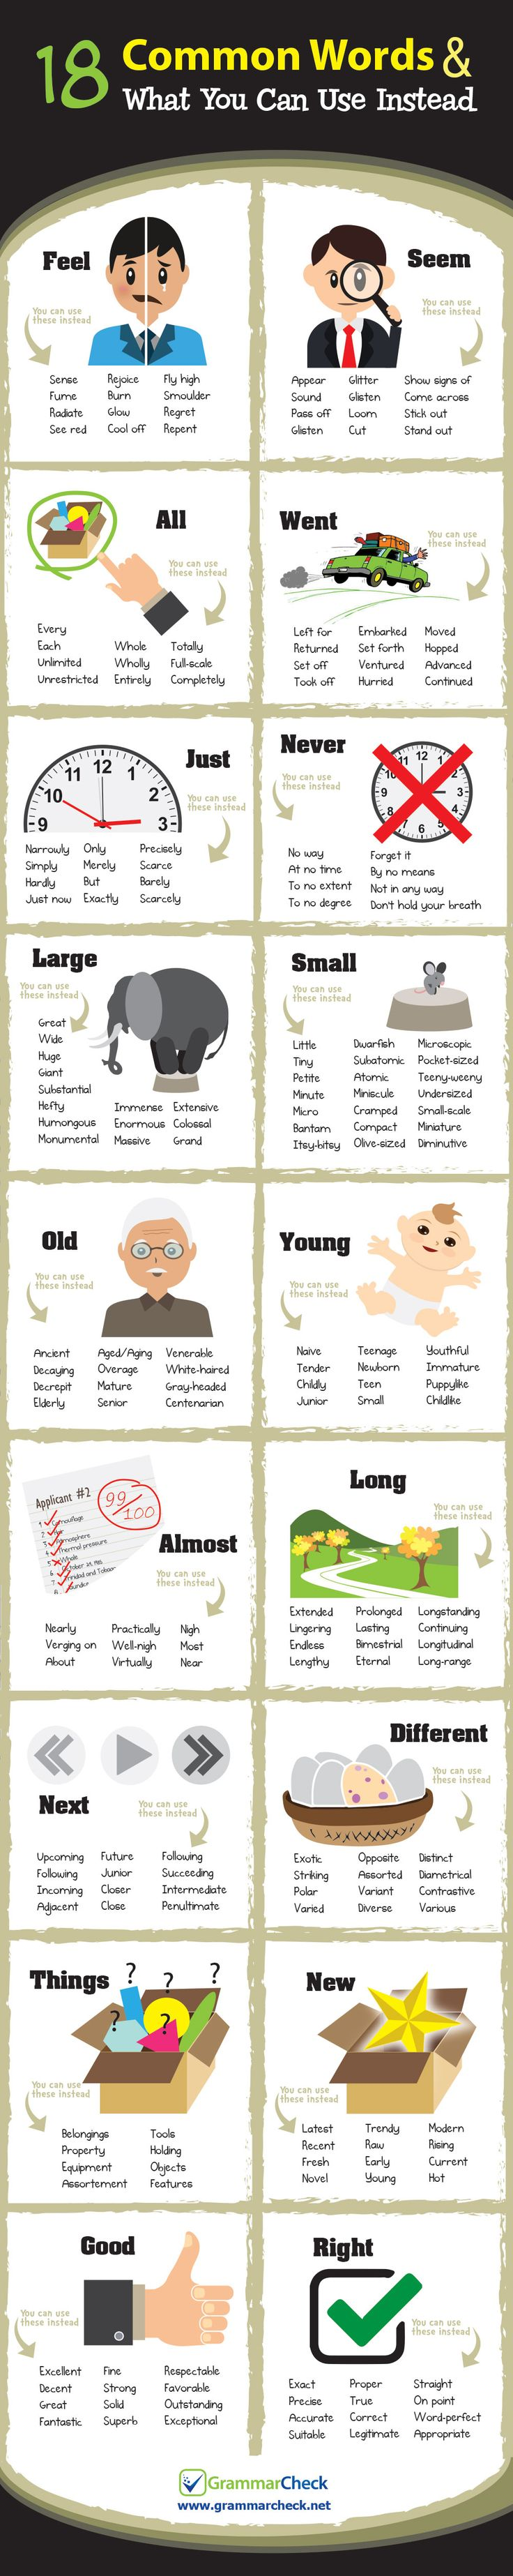 18 common Words & What You Can Use Instead (Infographic)                                                                                                                                                                                 More